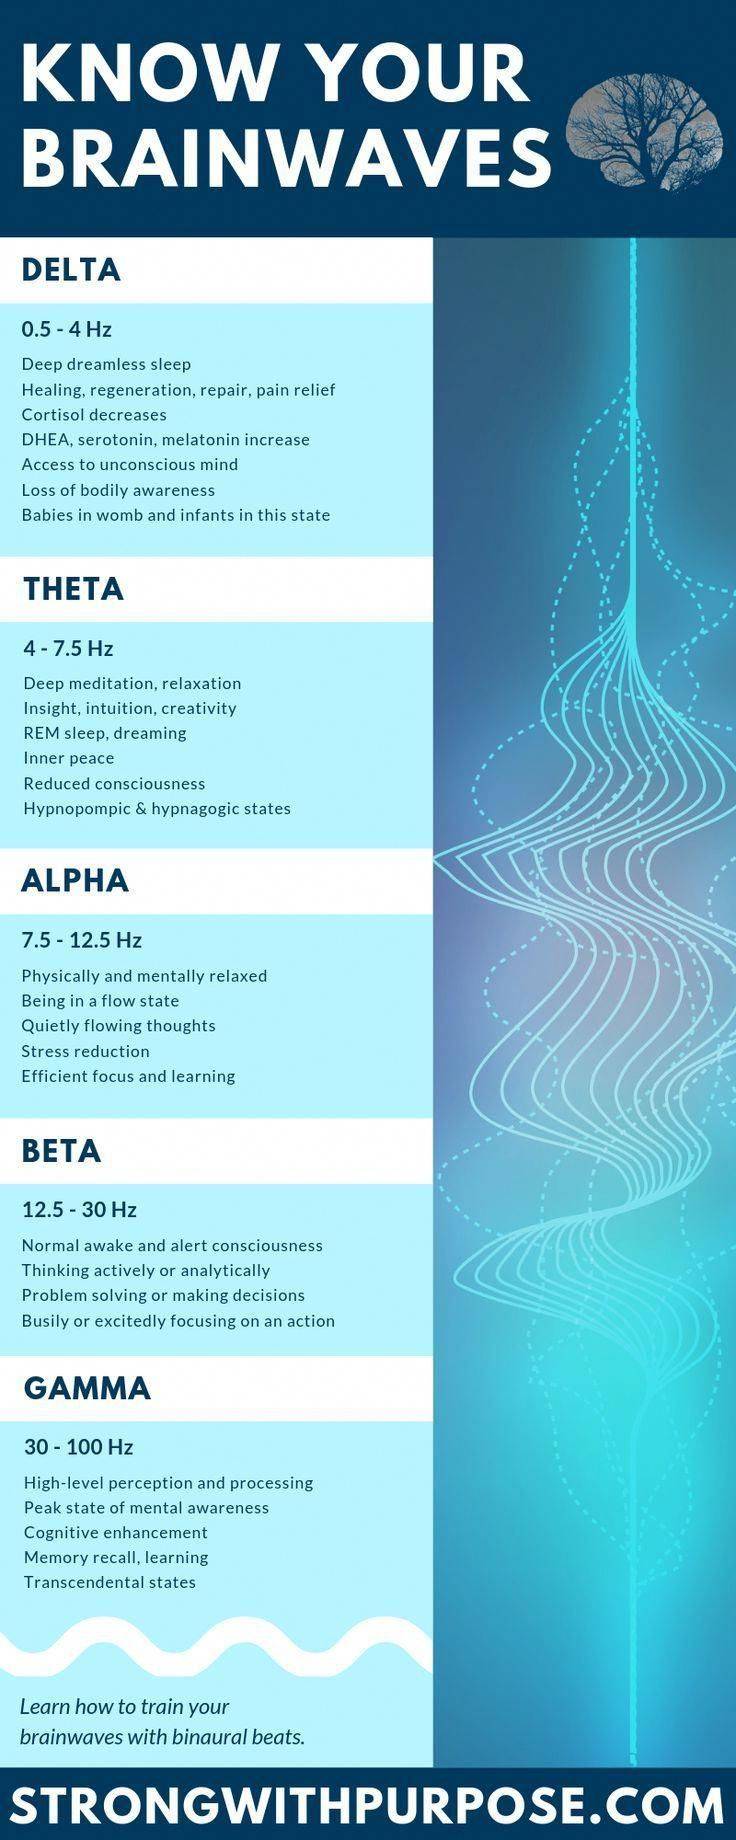 Infographic about delta theta alpha beta and gamma brainwaves Learn more about the science of brainwaves and binaural beats